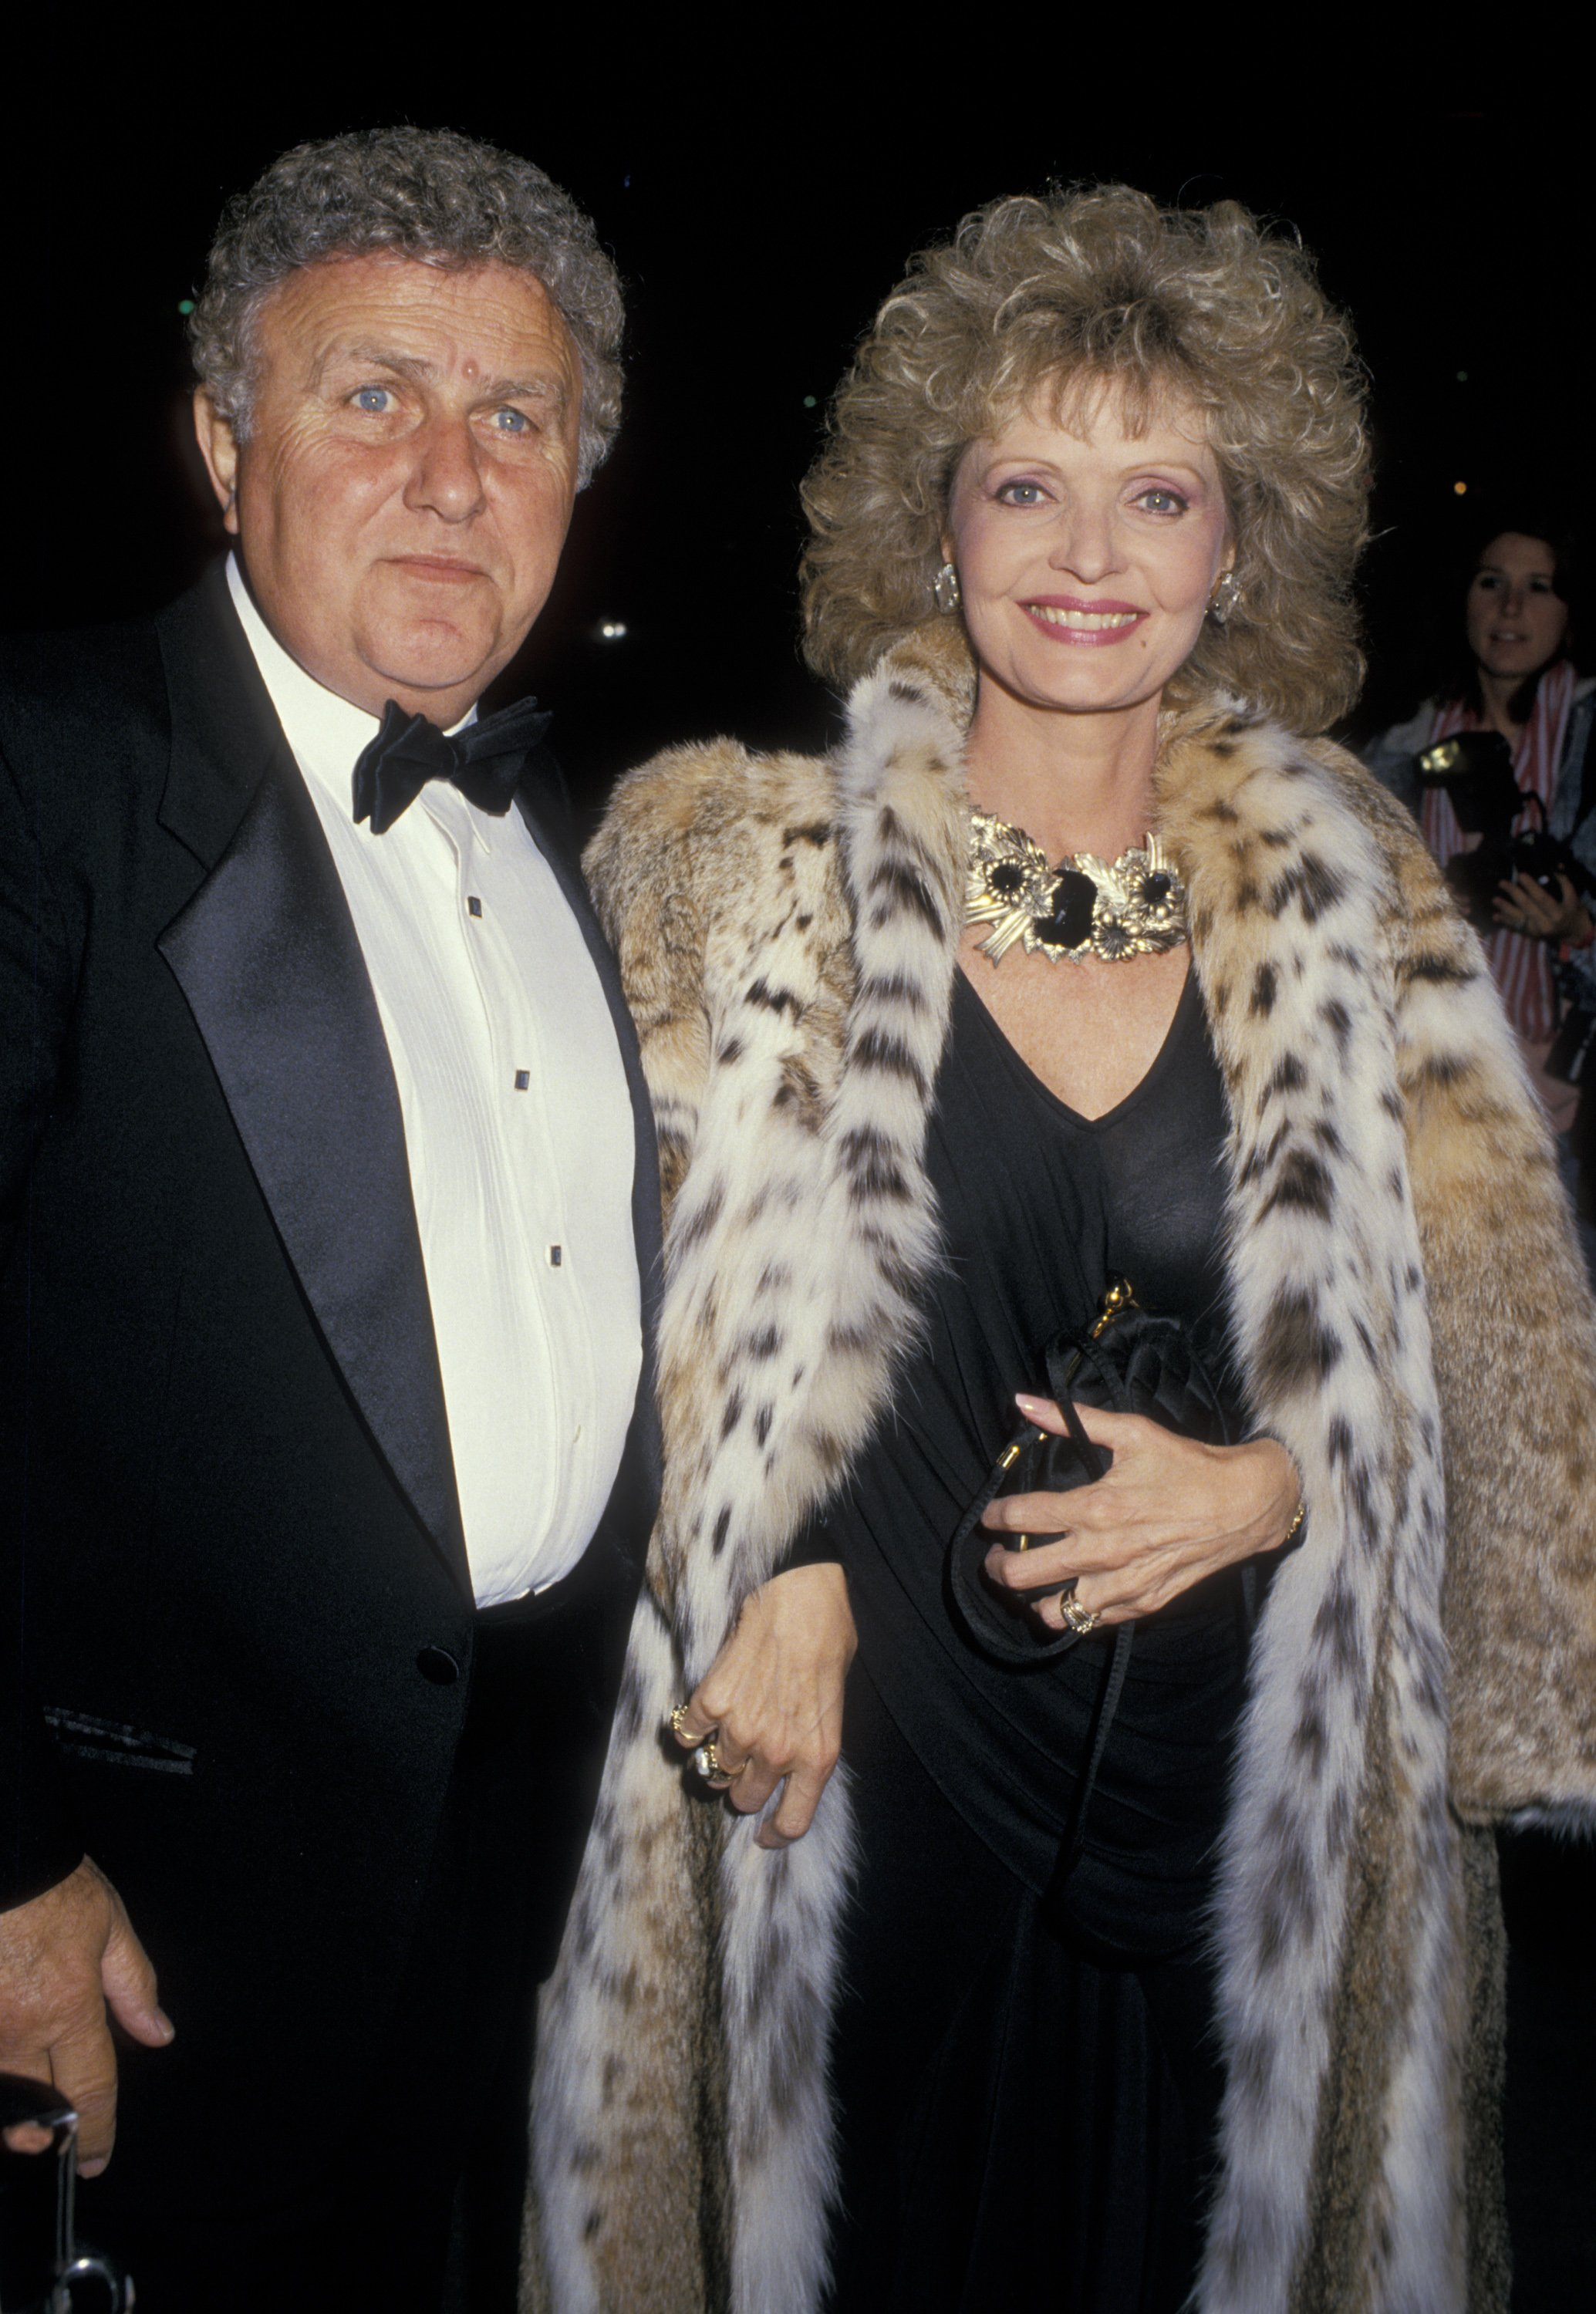 """John Kappas and Florence Henderson at the """"Variety Club International All-Star Party"""" on November 22, 1987, in Burbank, California 